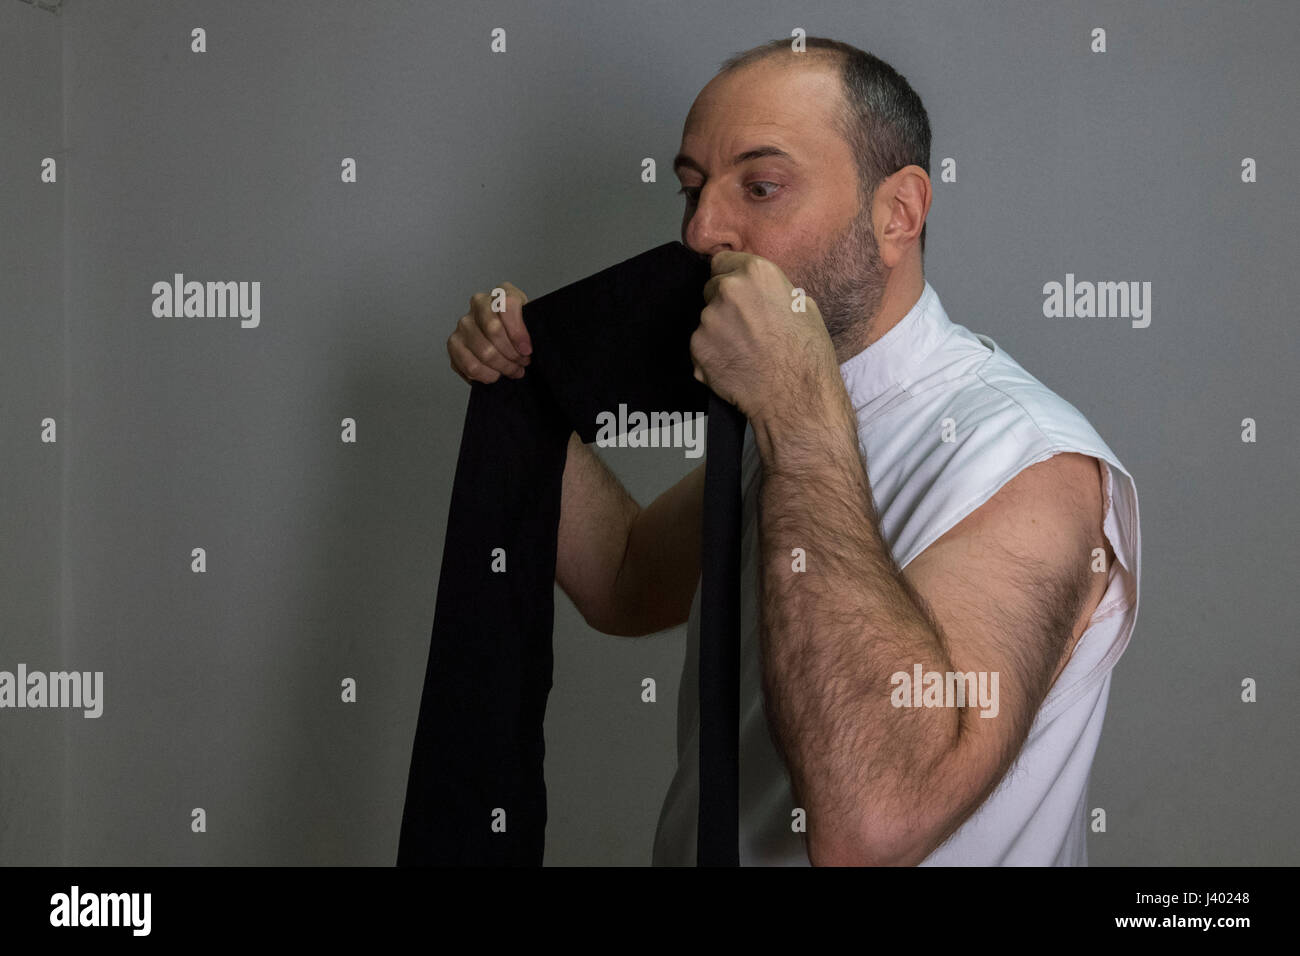 Dervish Robing, Religiously Kissing Elifi Nemed As A Sign Of Respect And Faith, waist band four fingers wide, Yaqup - Stock Image